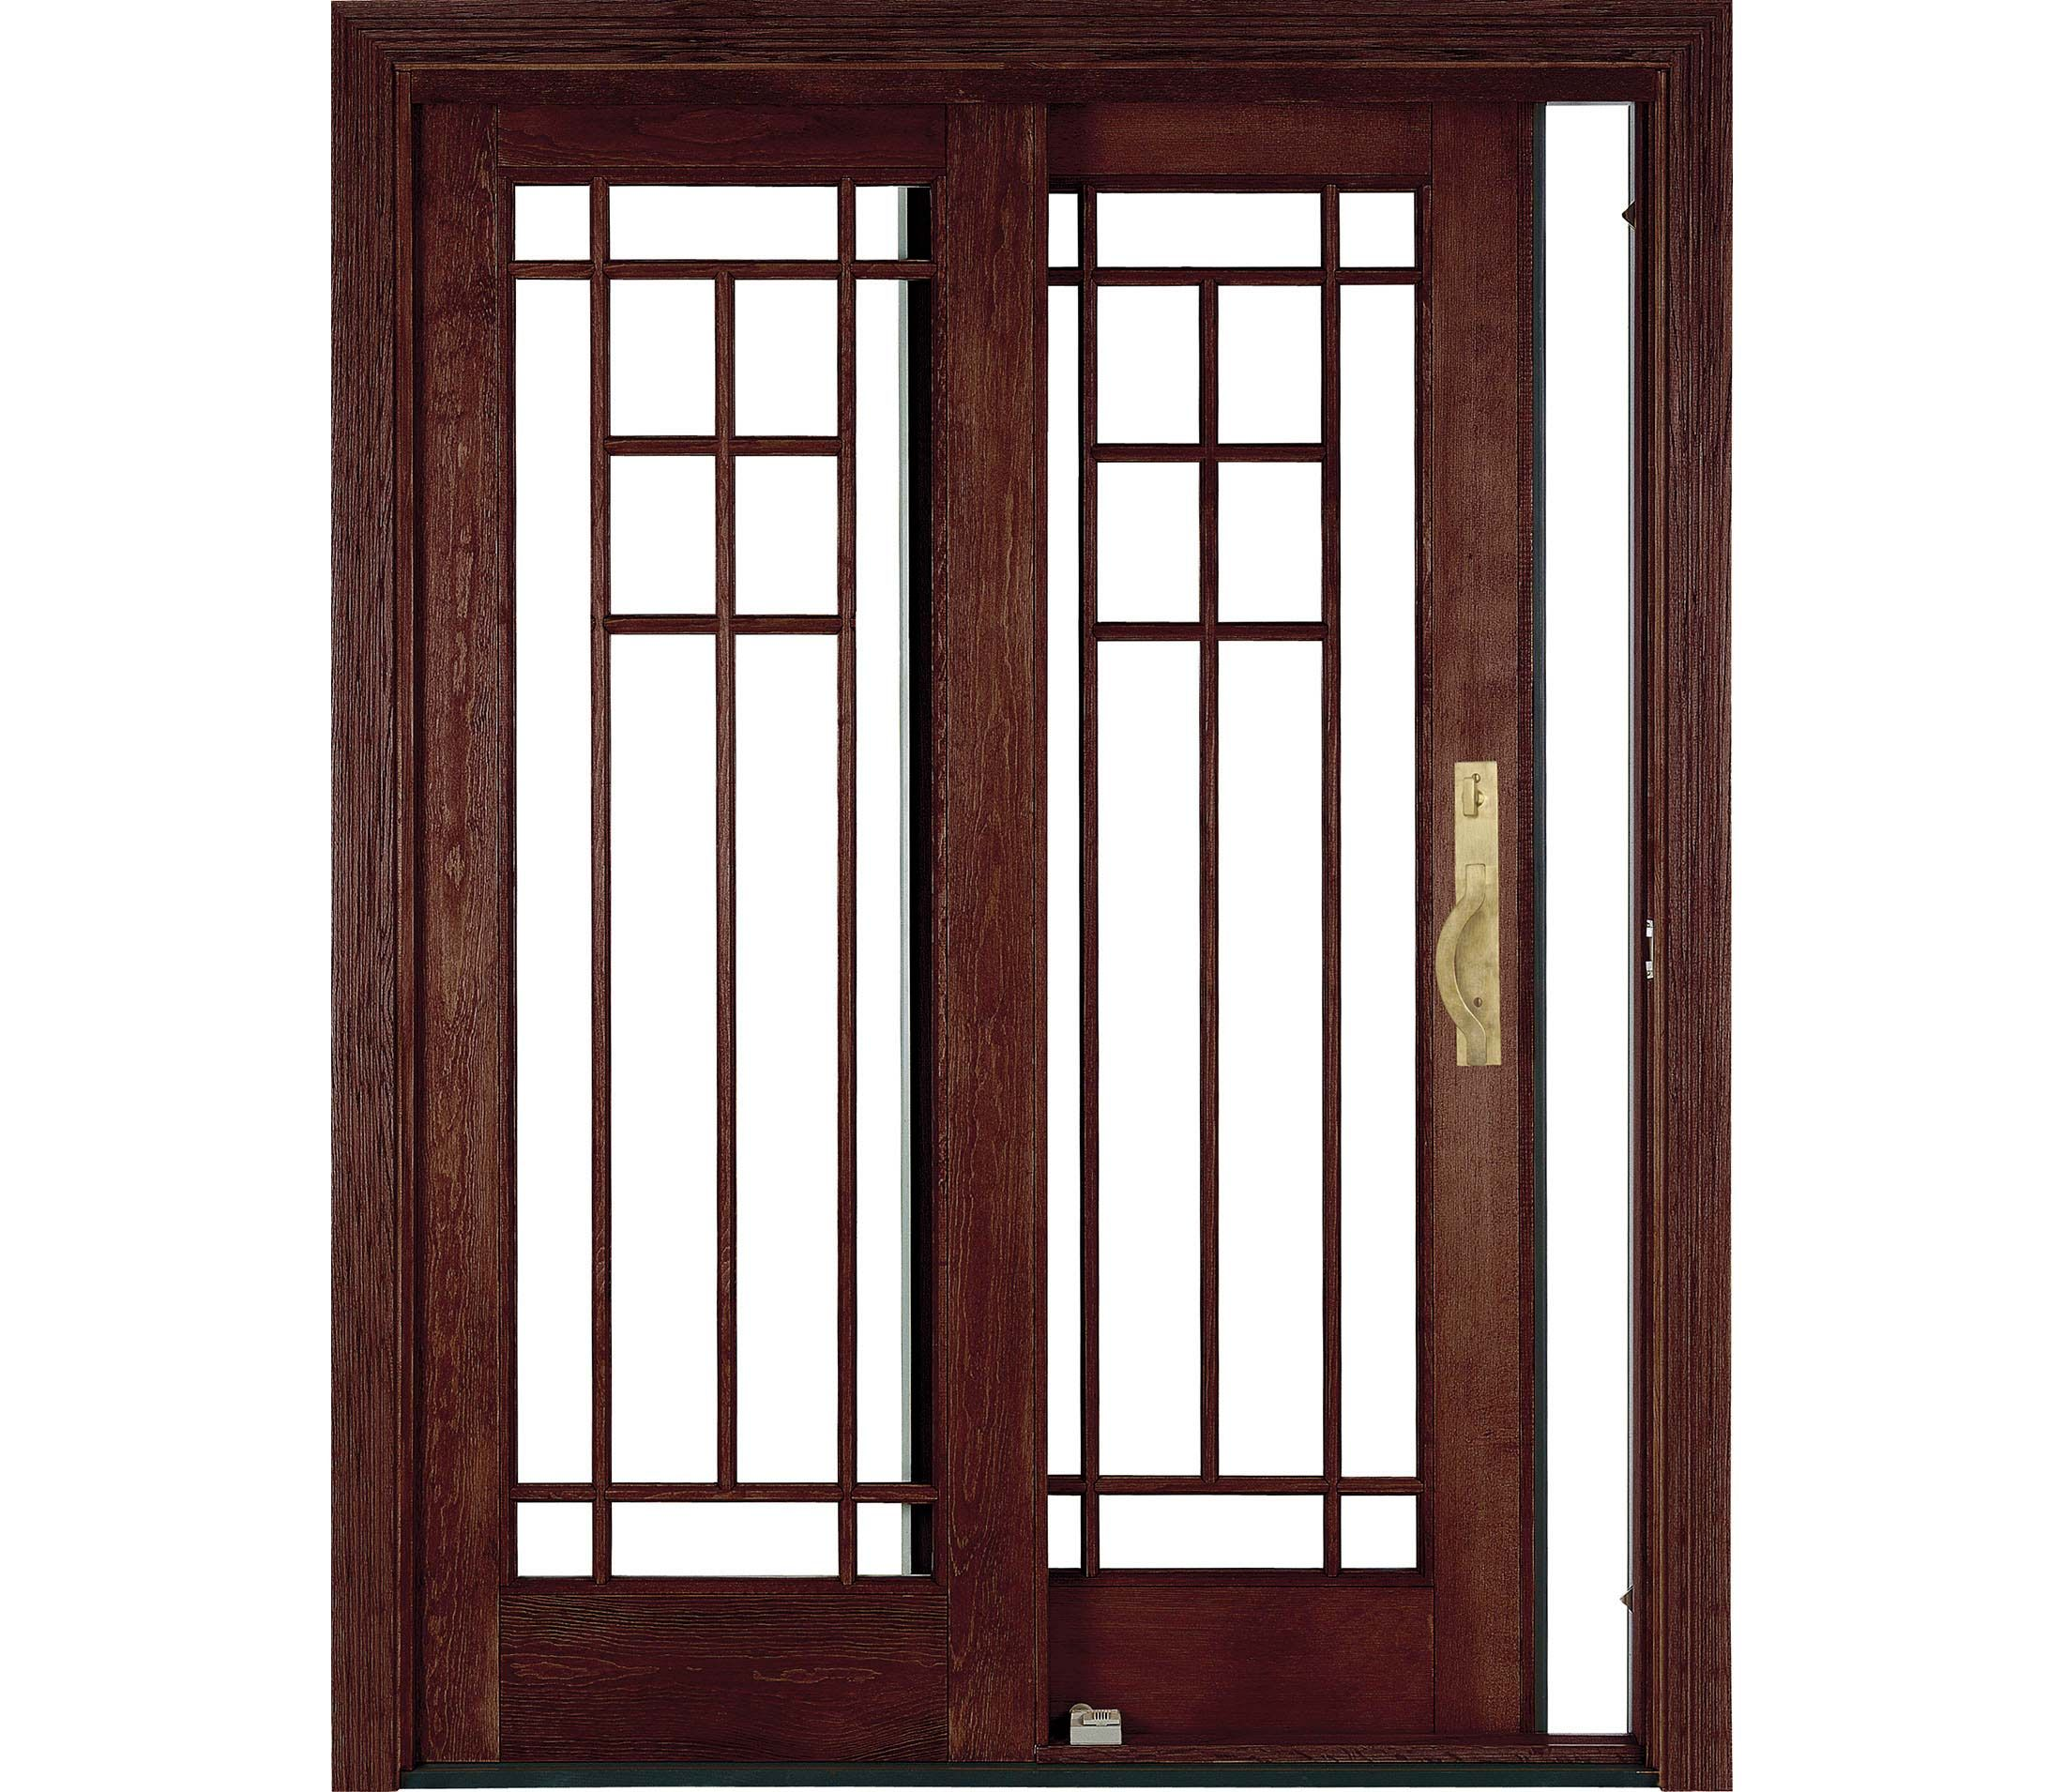 Sliding Wood Patio Doors architect series sliding patio door | pella | craftsman dream